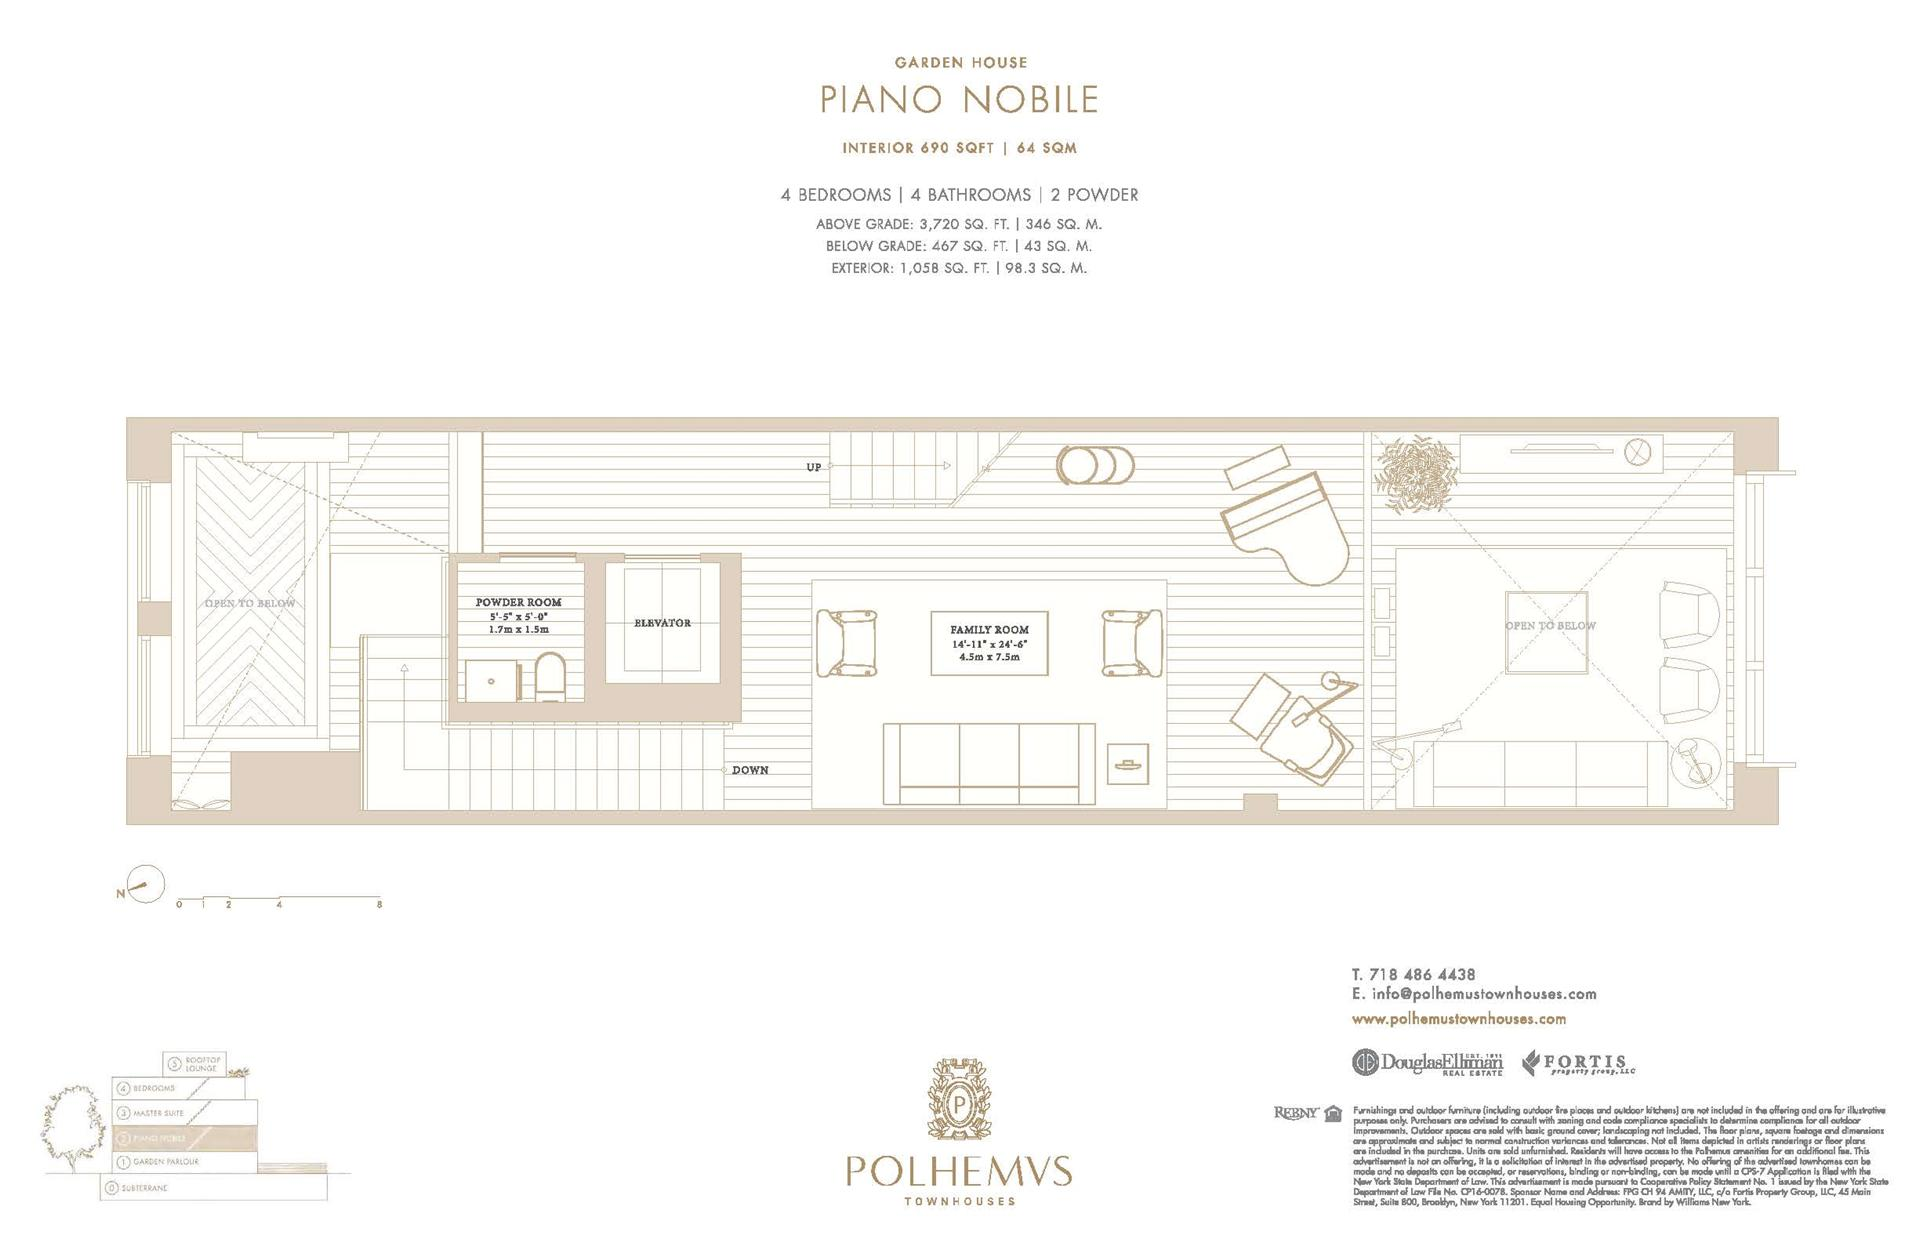 Floor plan of Polhemus, 92A Amity St - Cobble Hill, New York